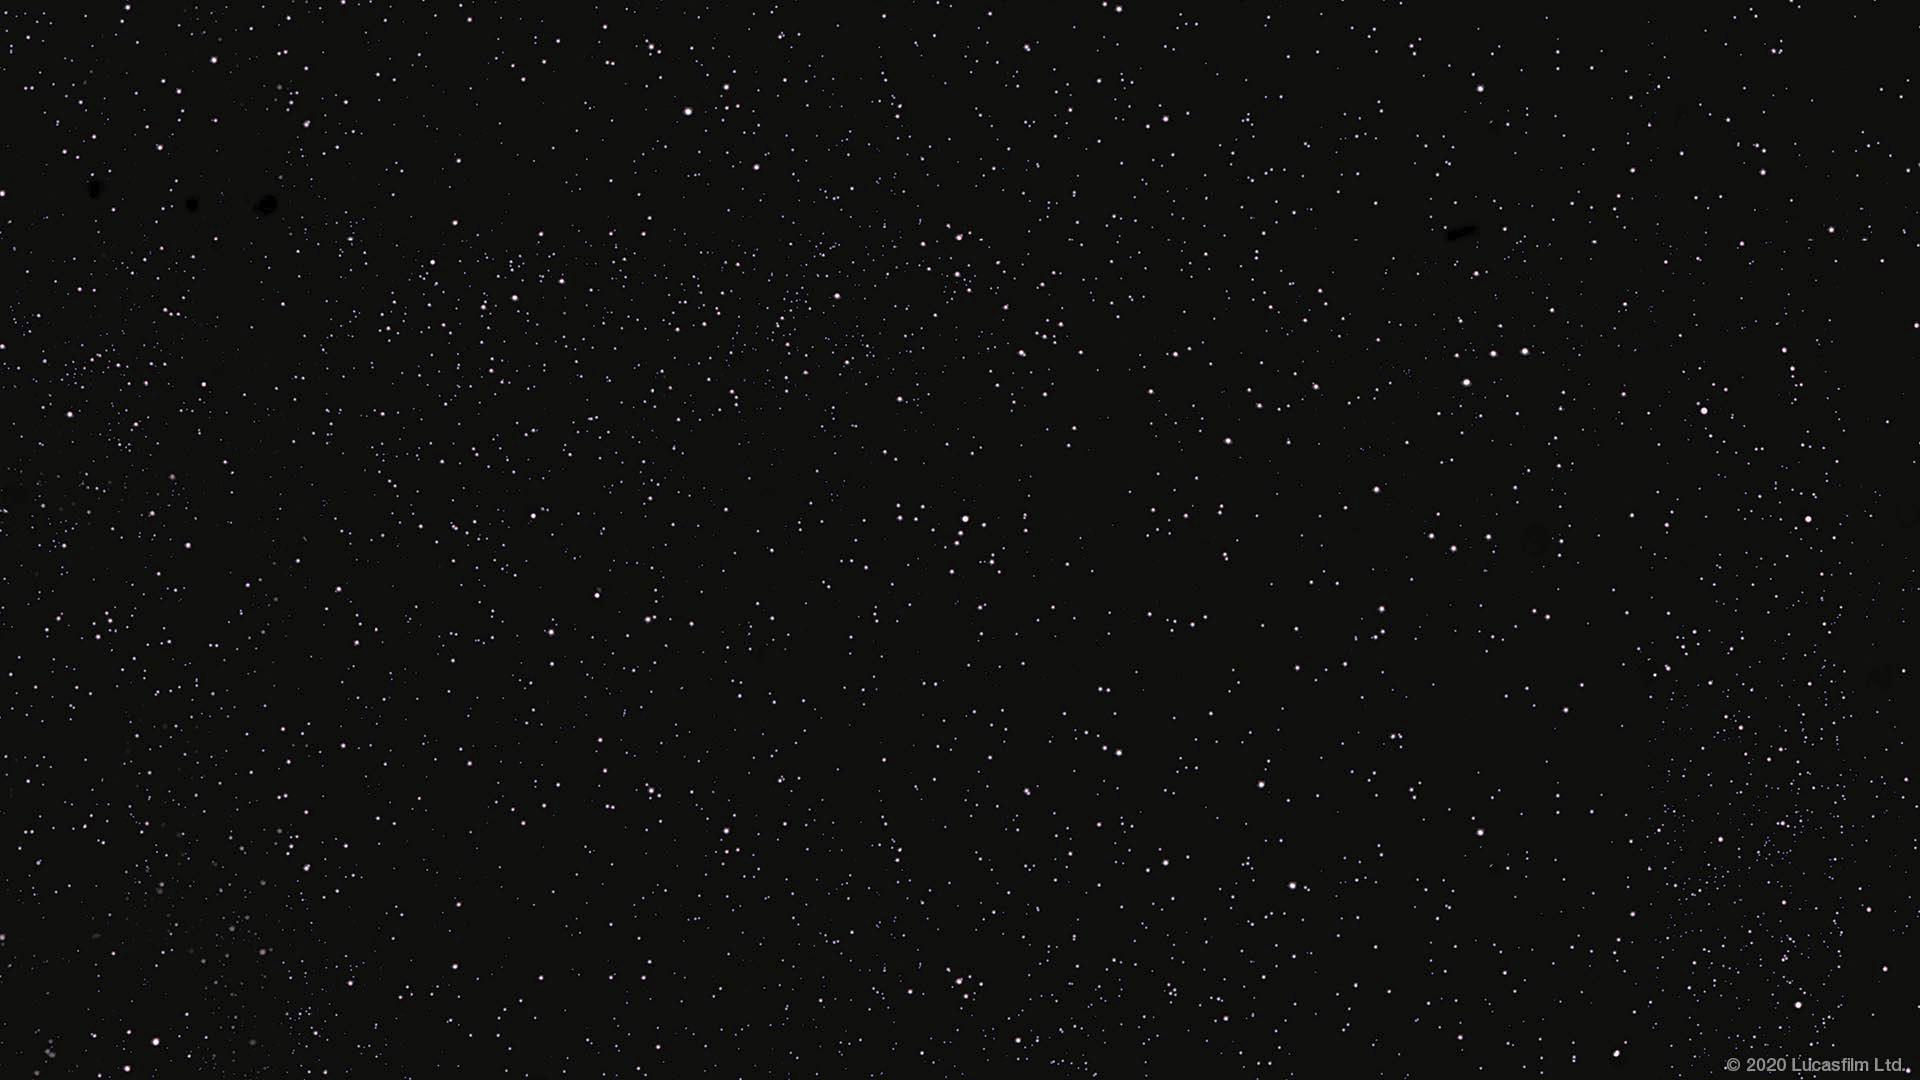 Star Wars virtual background: starfield